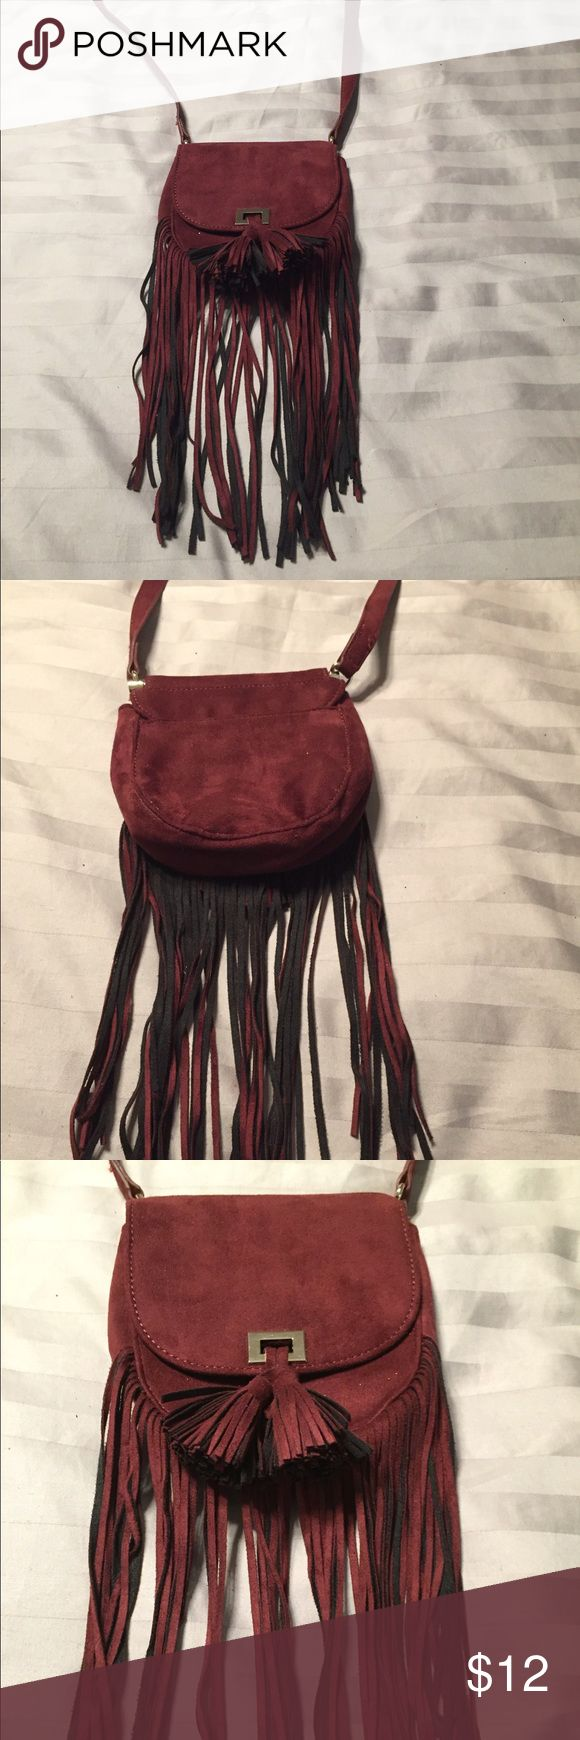 Burgundy suede purse with fringes In excellent condition,  only used once.  Got it at Express Store.  It's burgundy and suede material. Bags Shoulder Bags